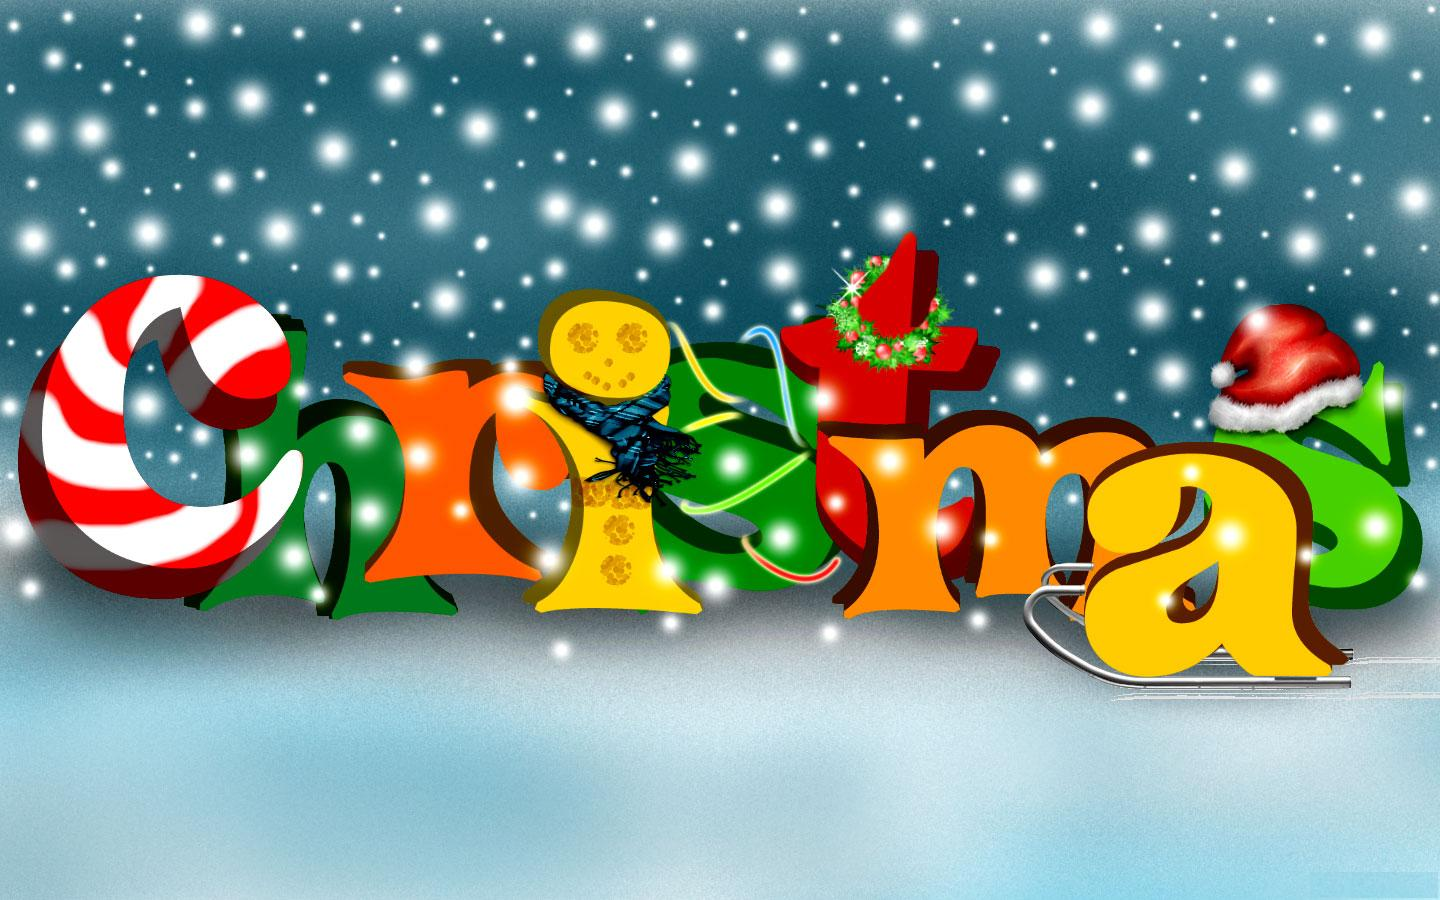 Christmas Games Wallpapers | Motivational Quotes Wallpaper